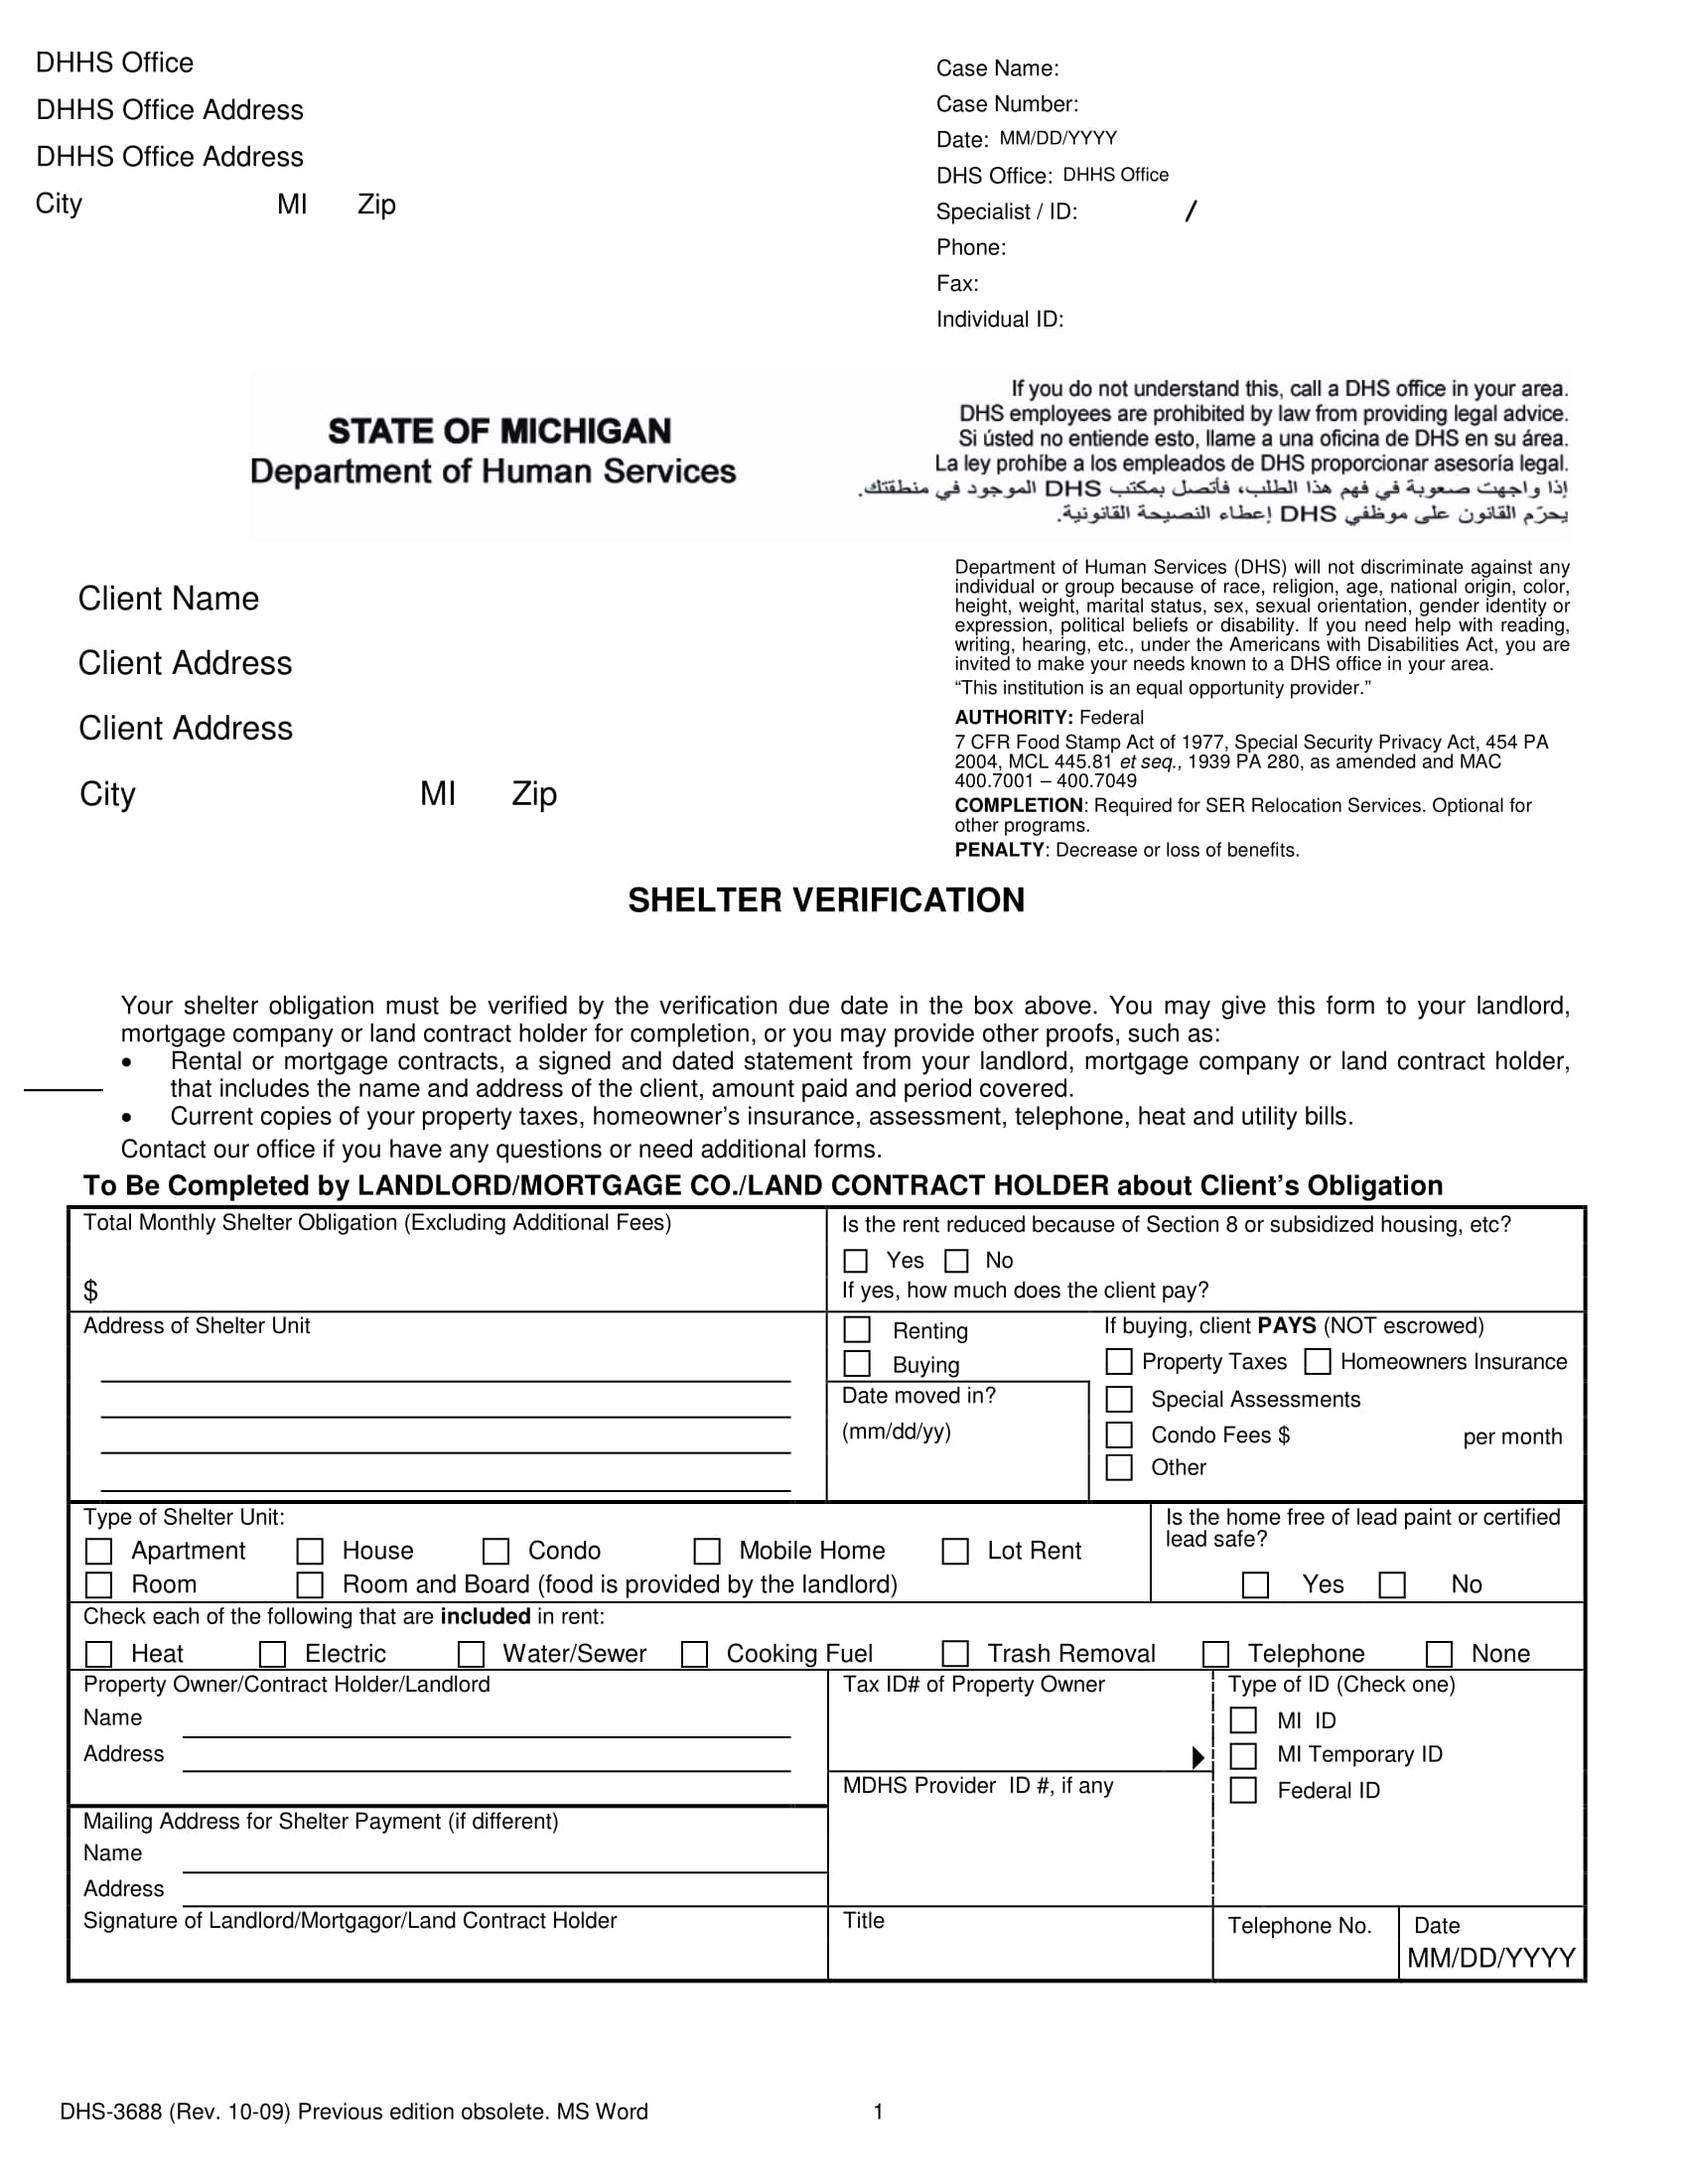 state shelter verification form 1